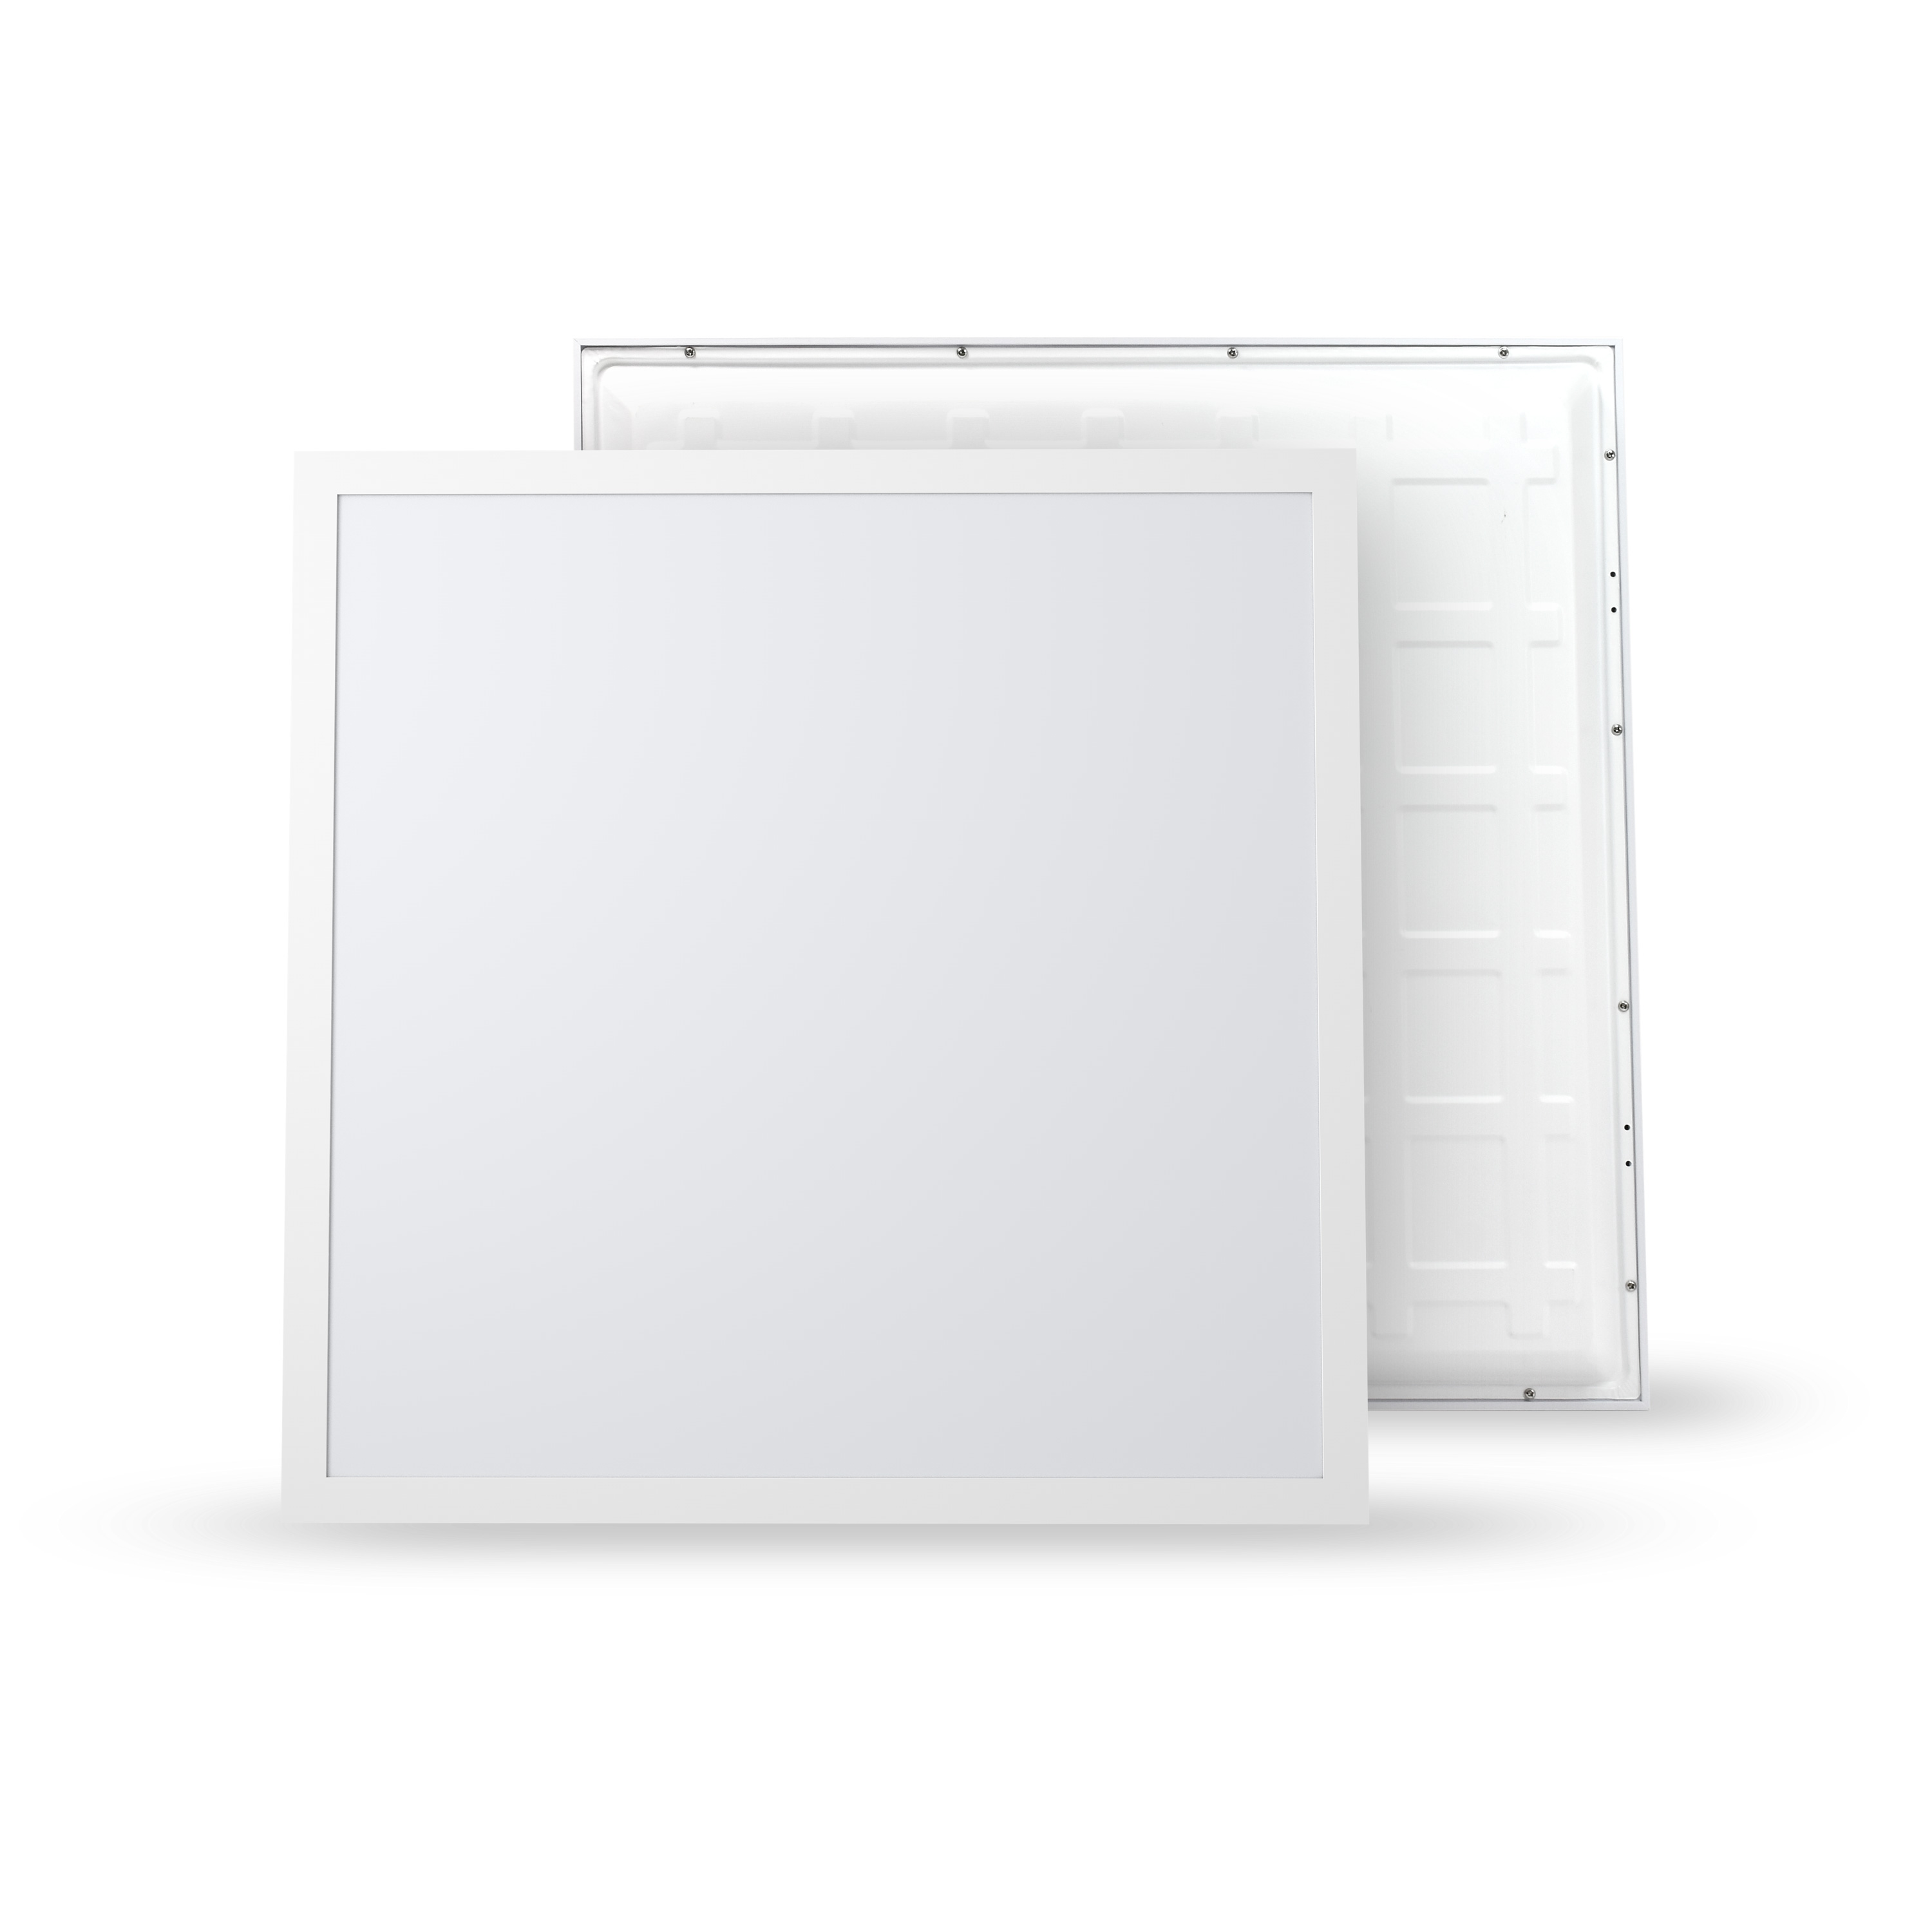 ultra thin dimmable UGR&lt;19 high brightness 130lm/<strong>w</strong> Certificate led 60x60 panel led backlit panels led panel 30x30